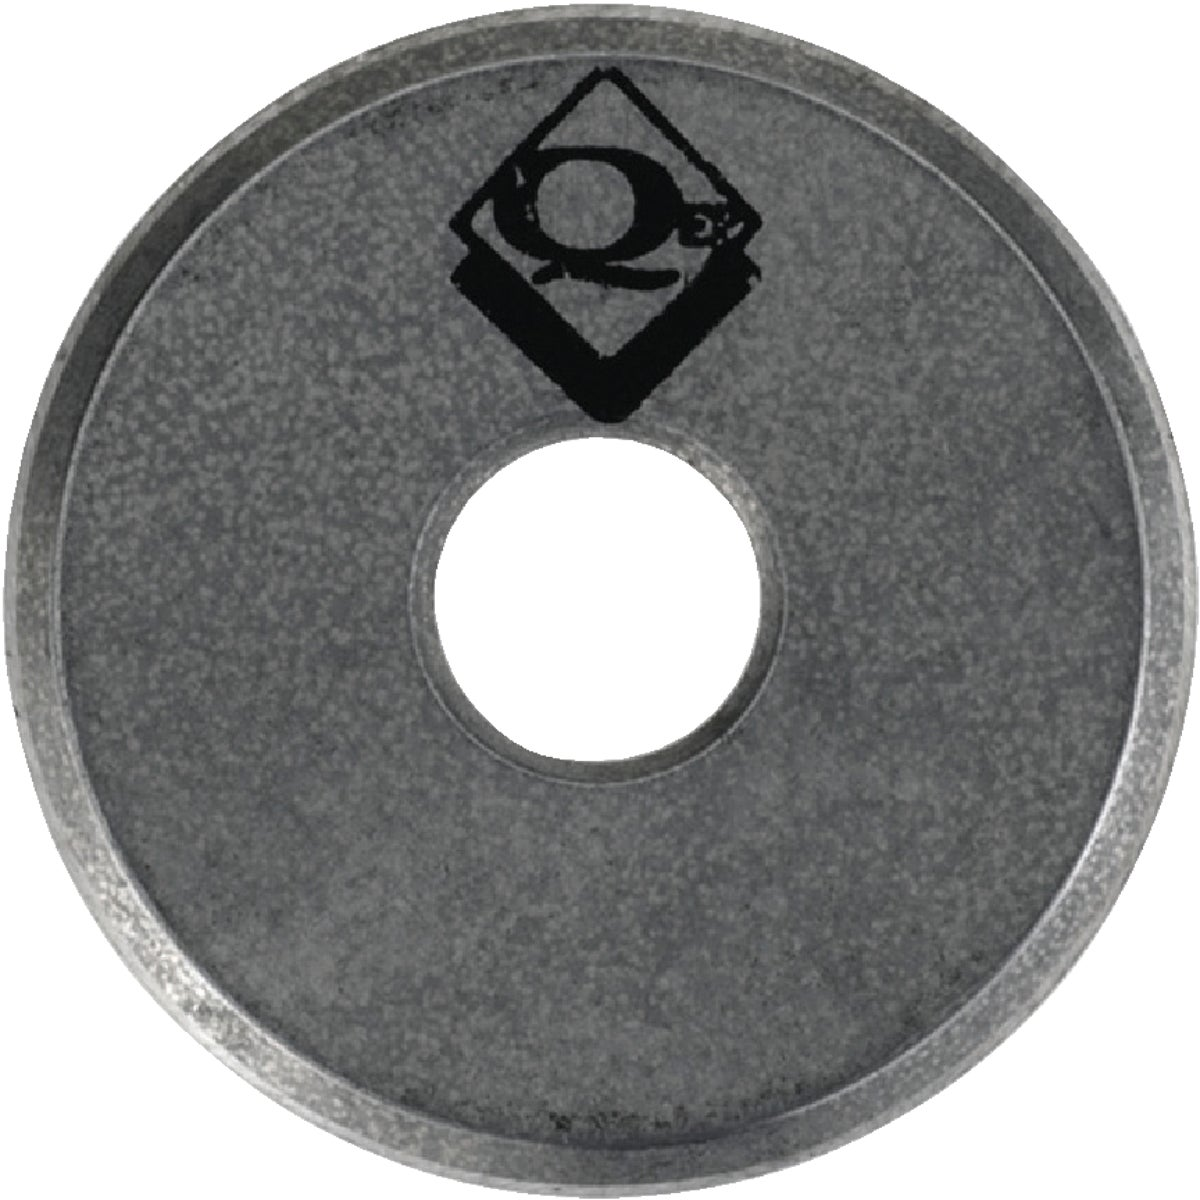 "7/8"" TILE CUTTER WHEEL - 10119 by Qep Co Inc Roberts"